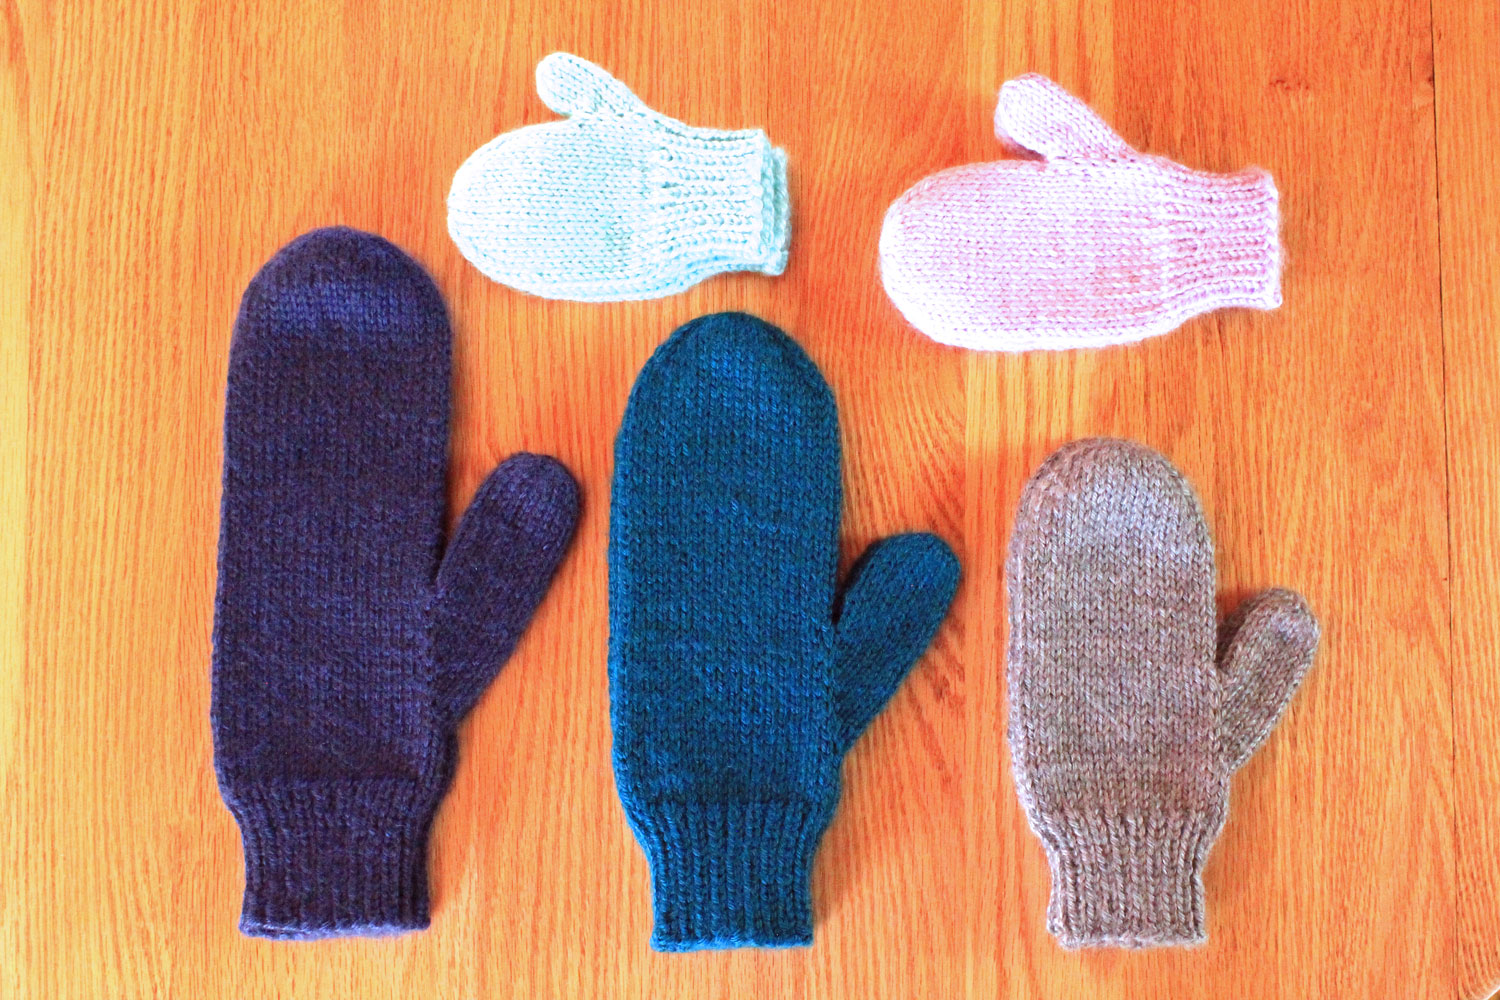 Simple Mitten Knitting Pattern - PurlsAndPixels